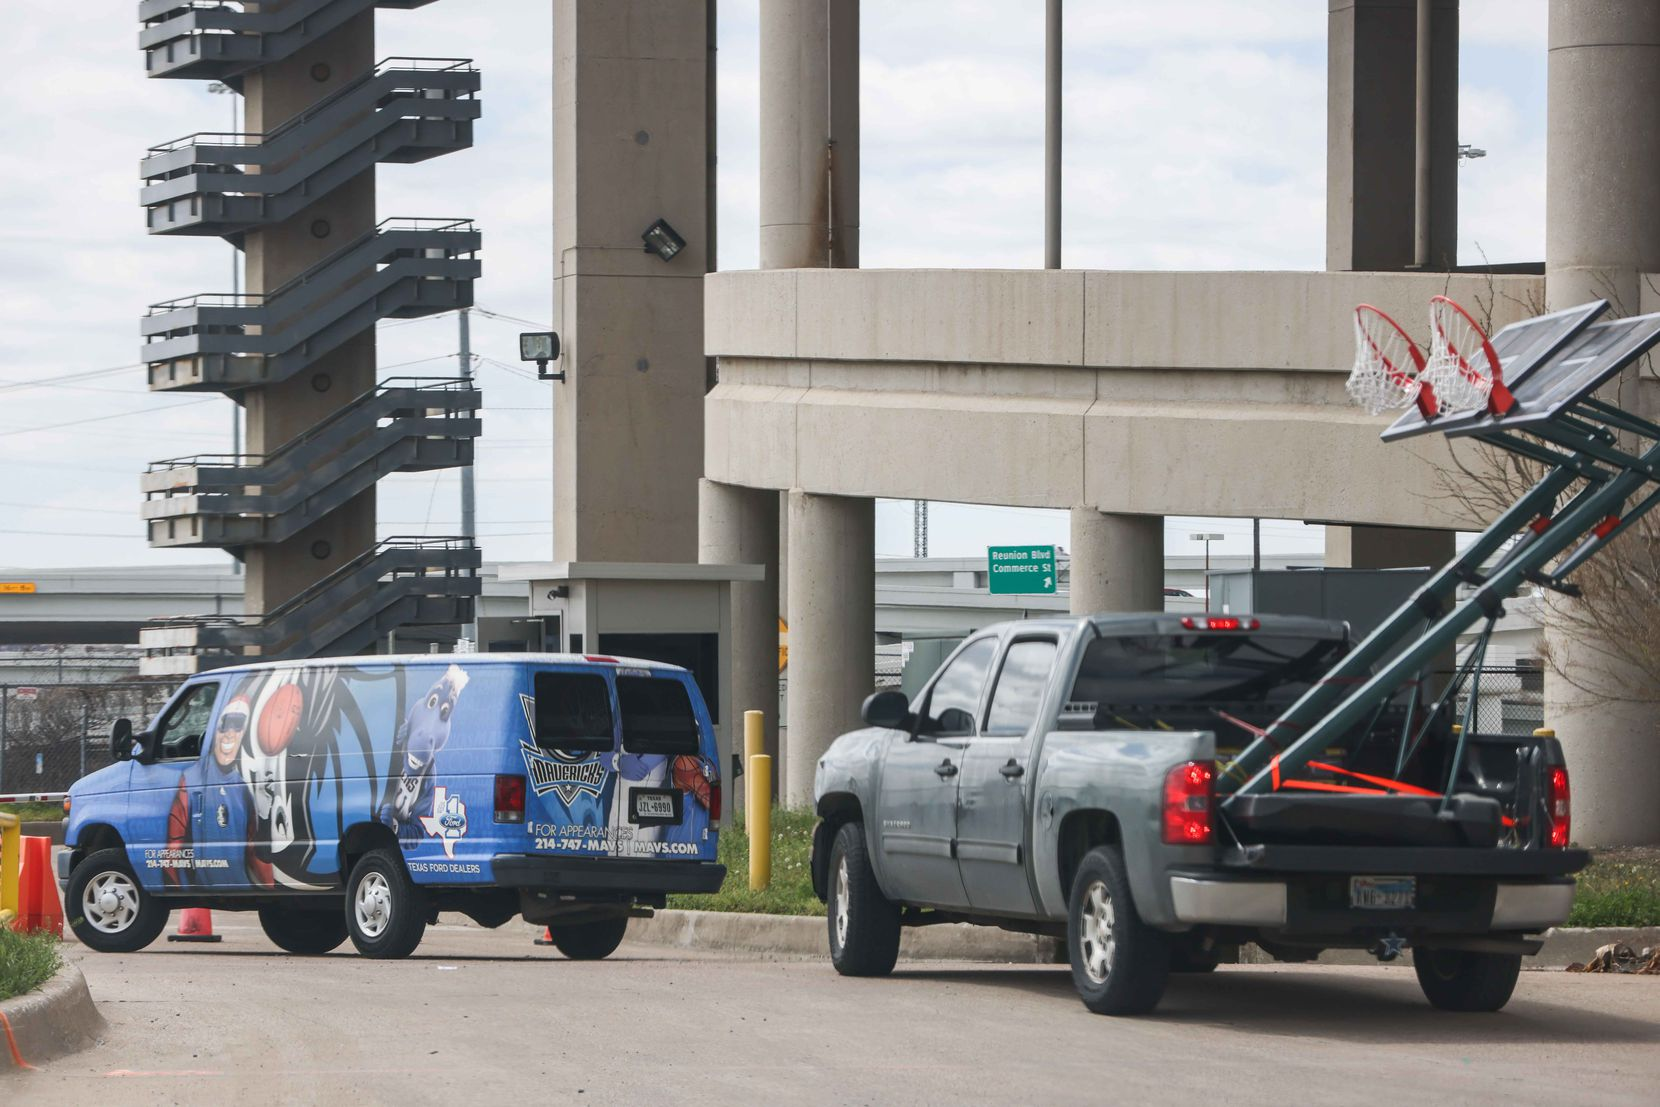 A van with the NBA team Mavericks logo, arrives along with a pickup carrying two basketball hoops to the Kay Bailey Hutchison Convention Center in Dallas on Thursday, March 18, 2021, where 200 unaccompanied immigrant children arrived Wednesday evening. The convention center serves as an emergency intake site to hold teens who have apprehended in increasing numbers at the U.S.-Mexico border.